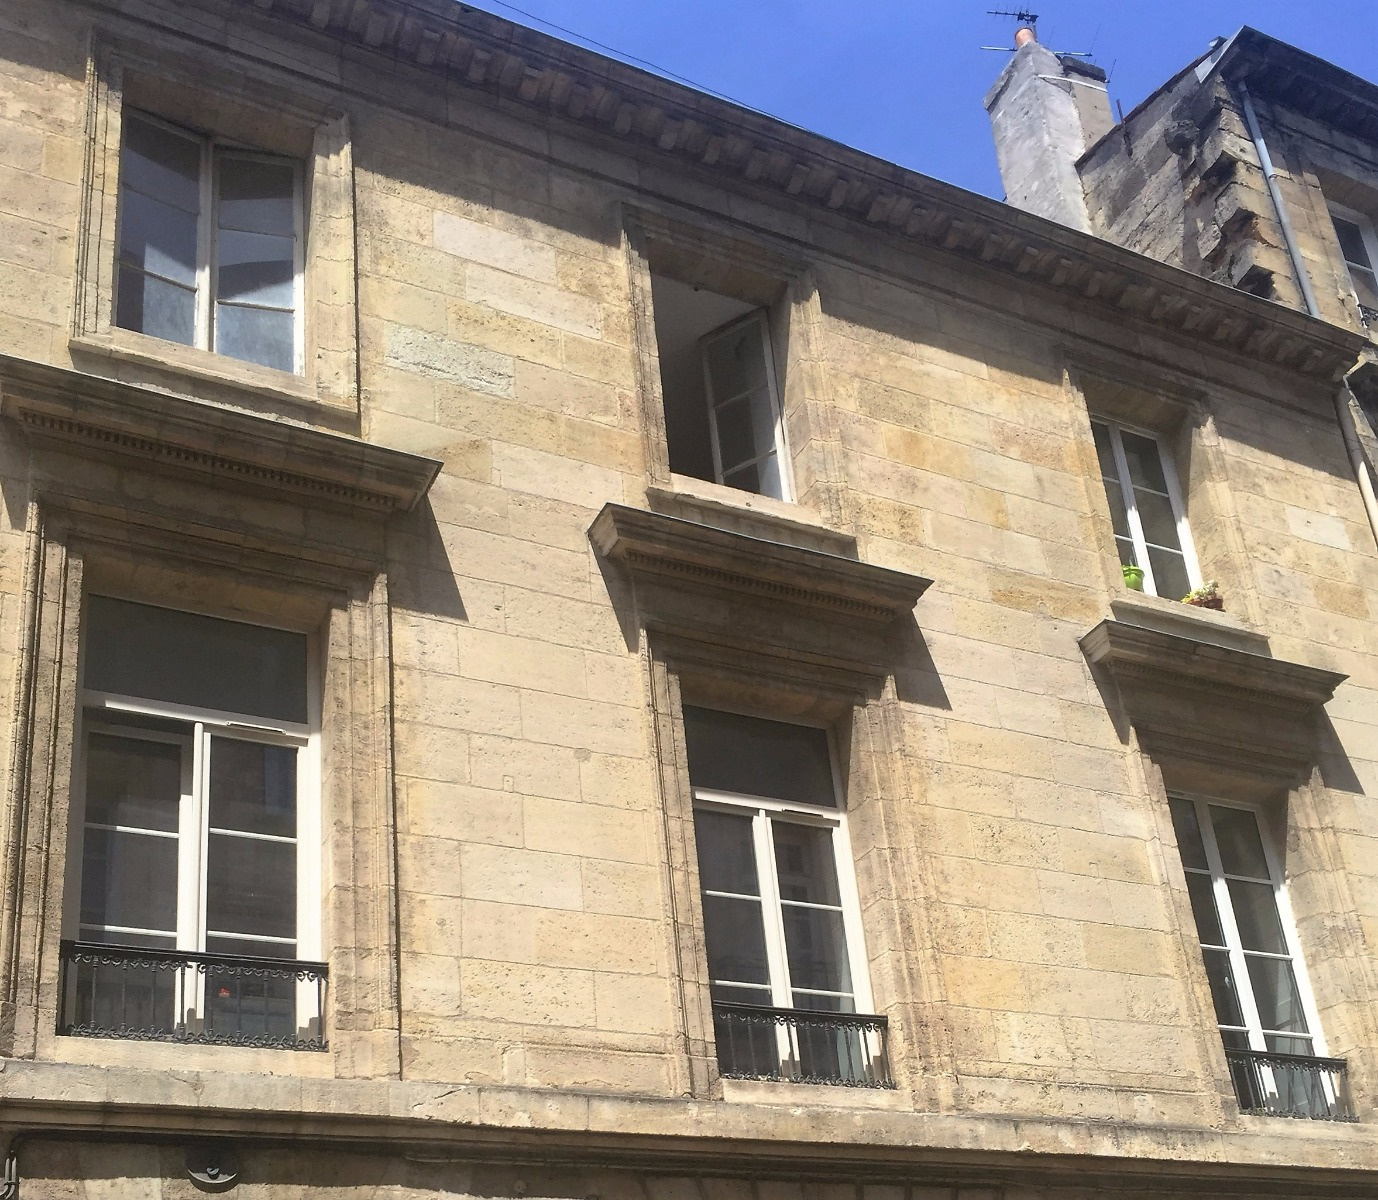 Vente appartements maisons et villas bordeaux saint for Appartement bordeaux quartier saint pierre